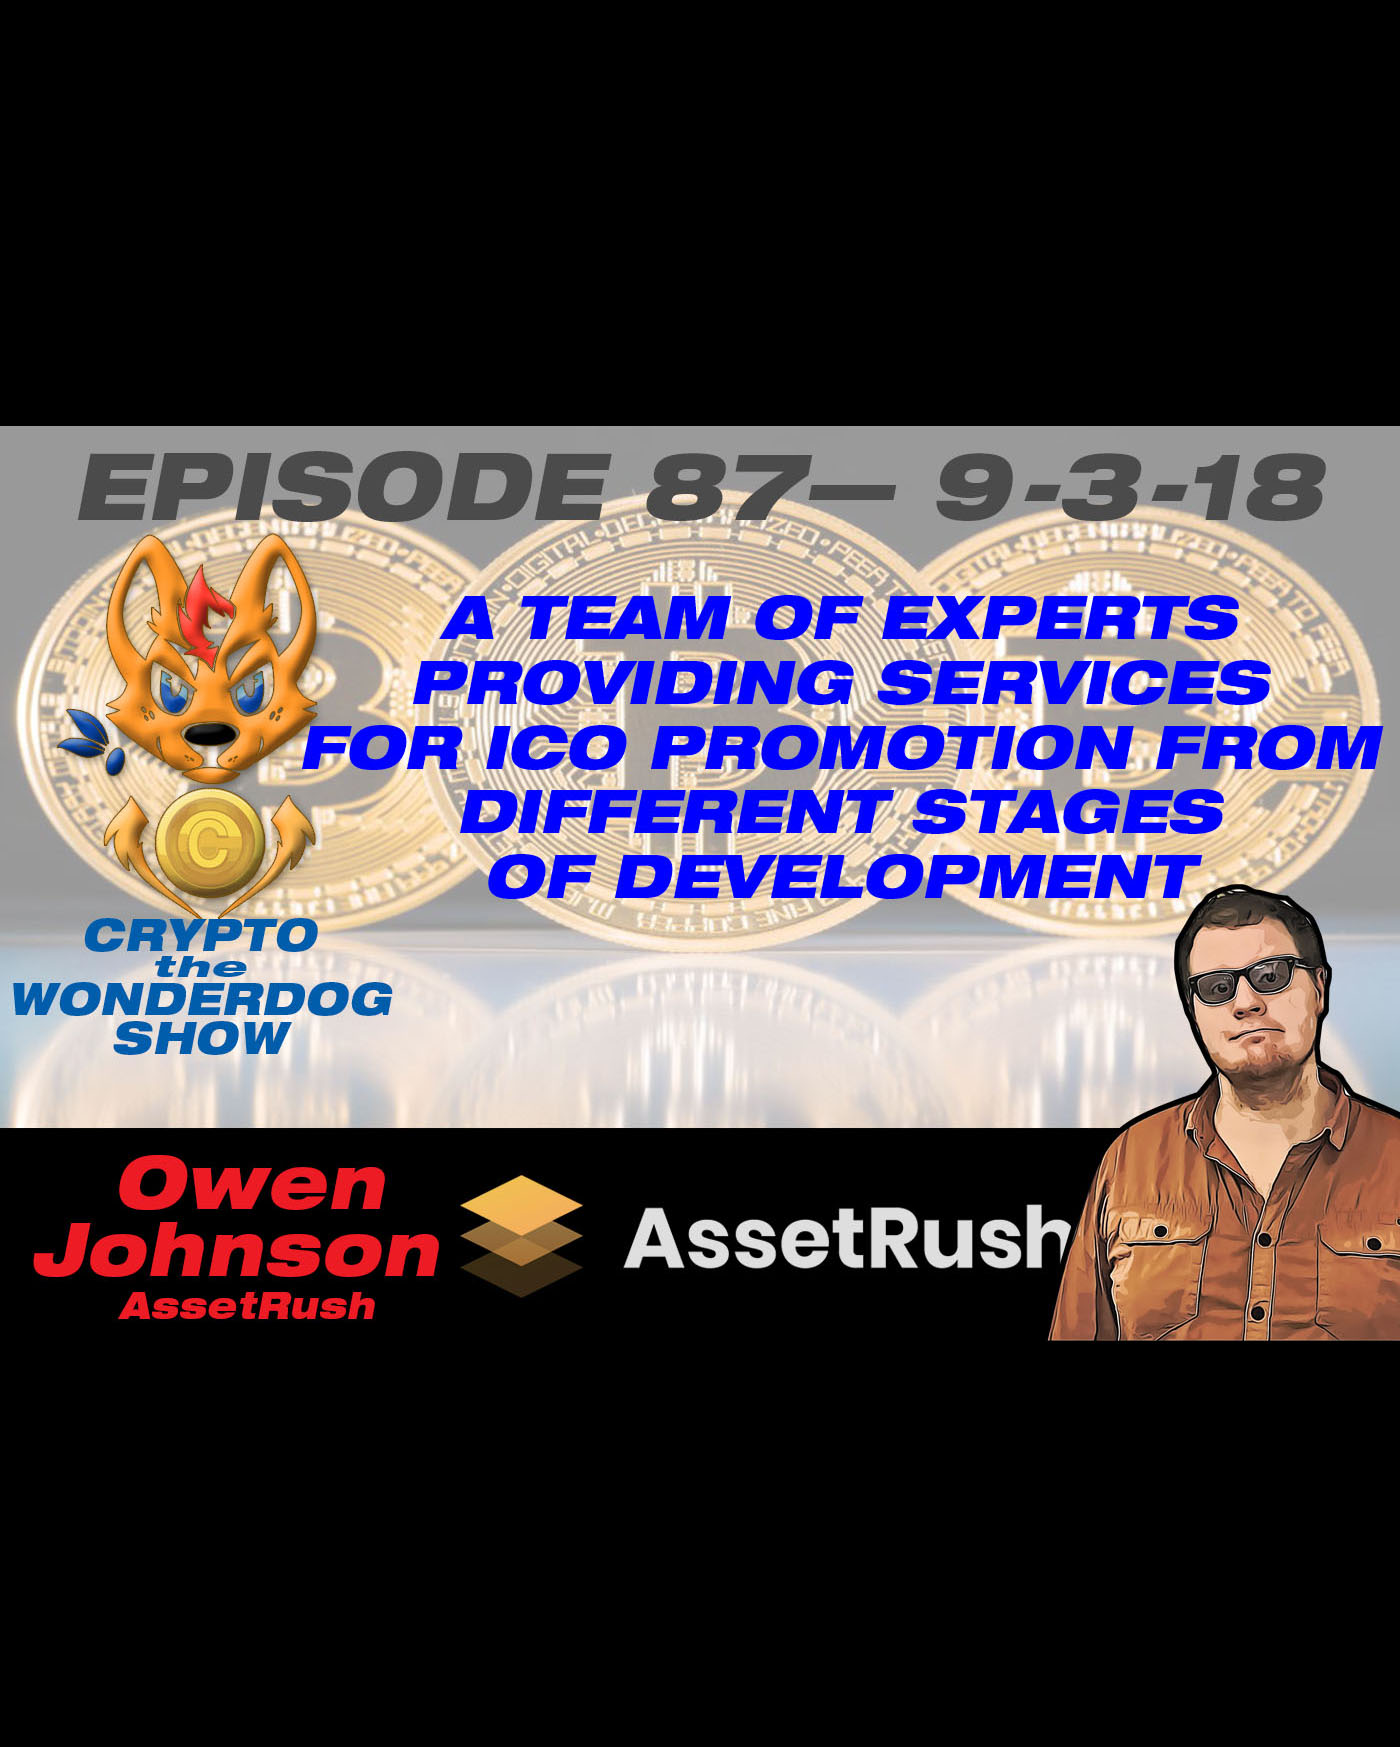 E87 - A team of experts providing services for ICO promotion from different stages of development. - AssetRush - The First Professional Token Promotion